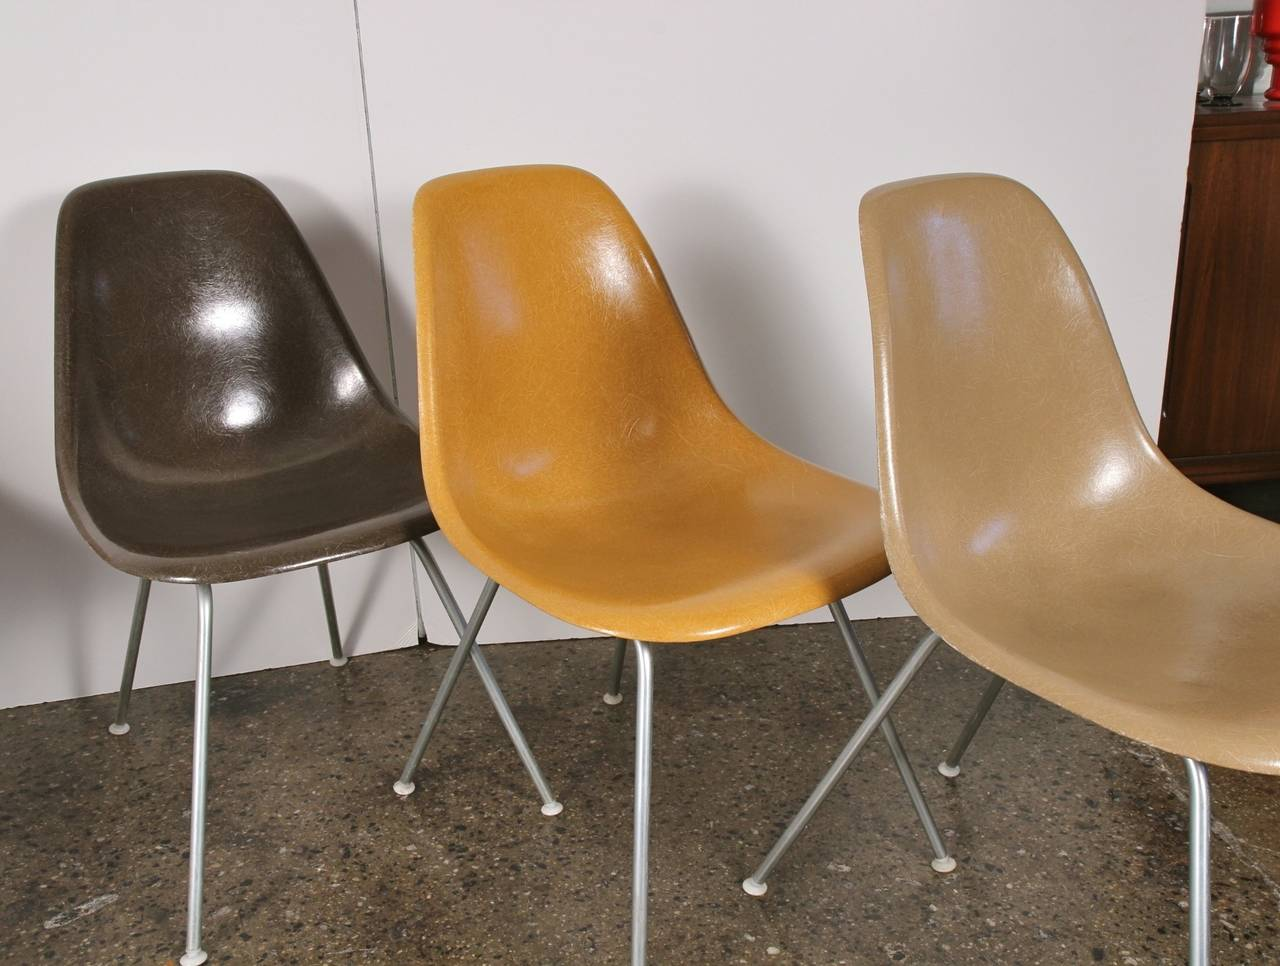 Original Eames Fiberglass Shell Chairs by Herman Miller For Sale 1